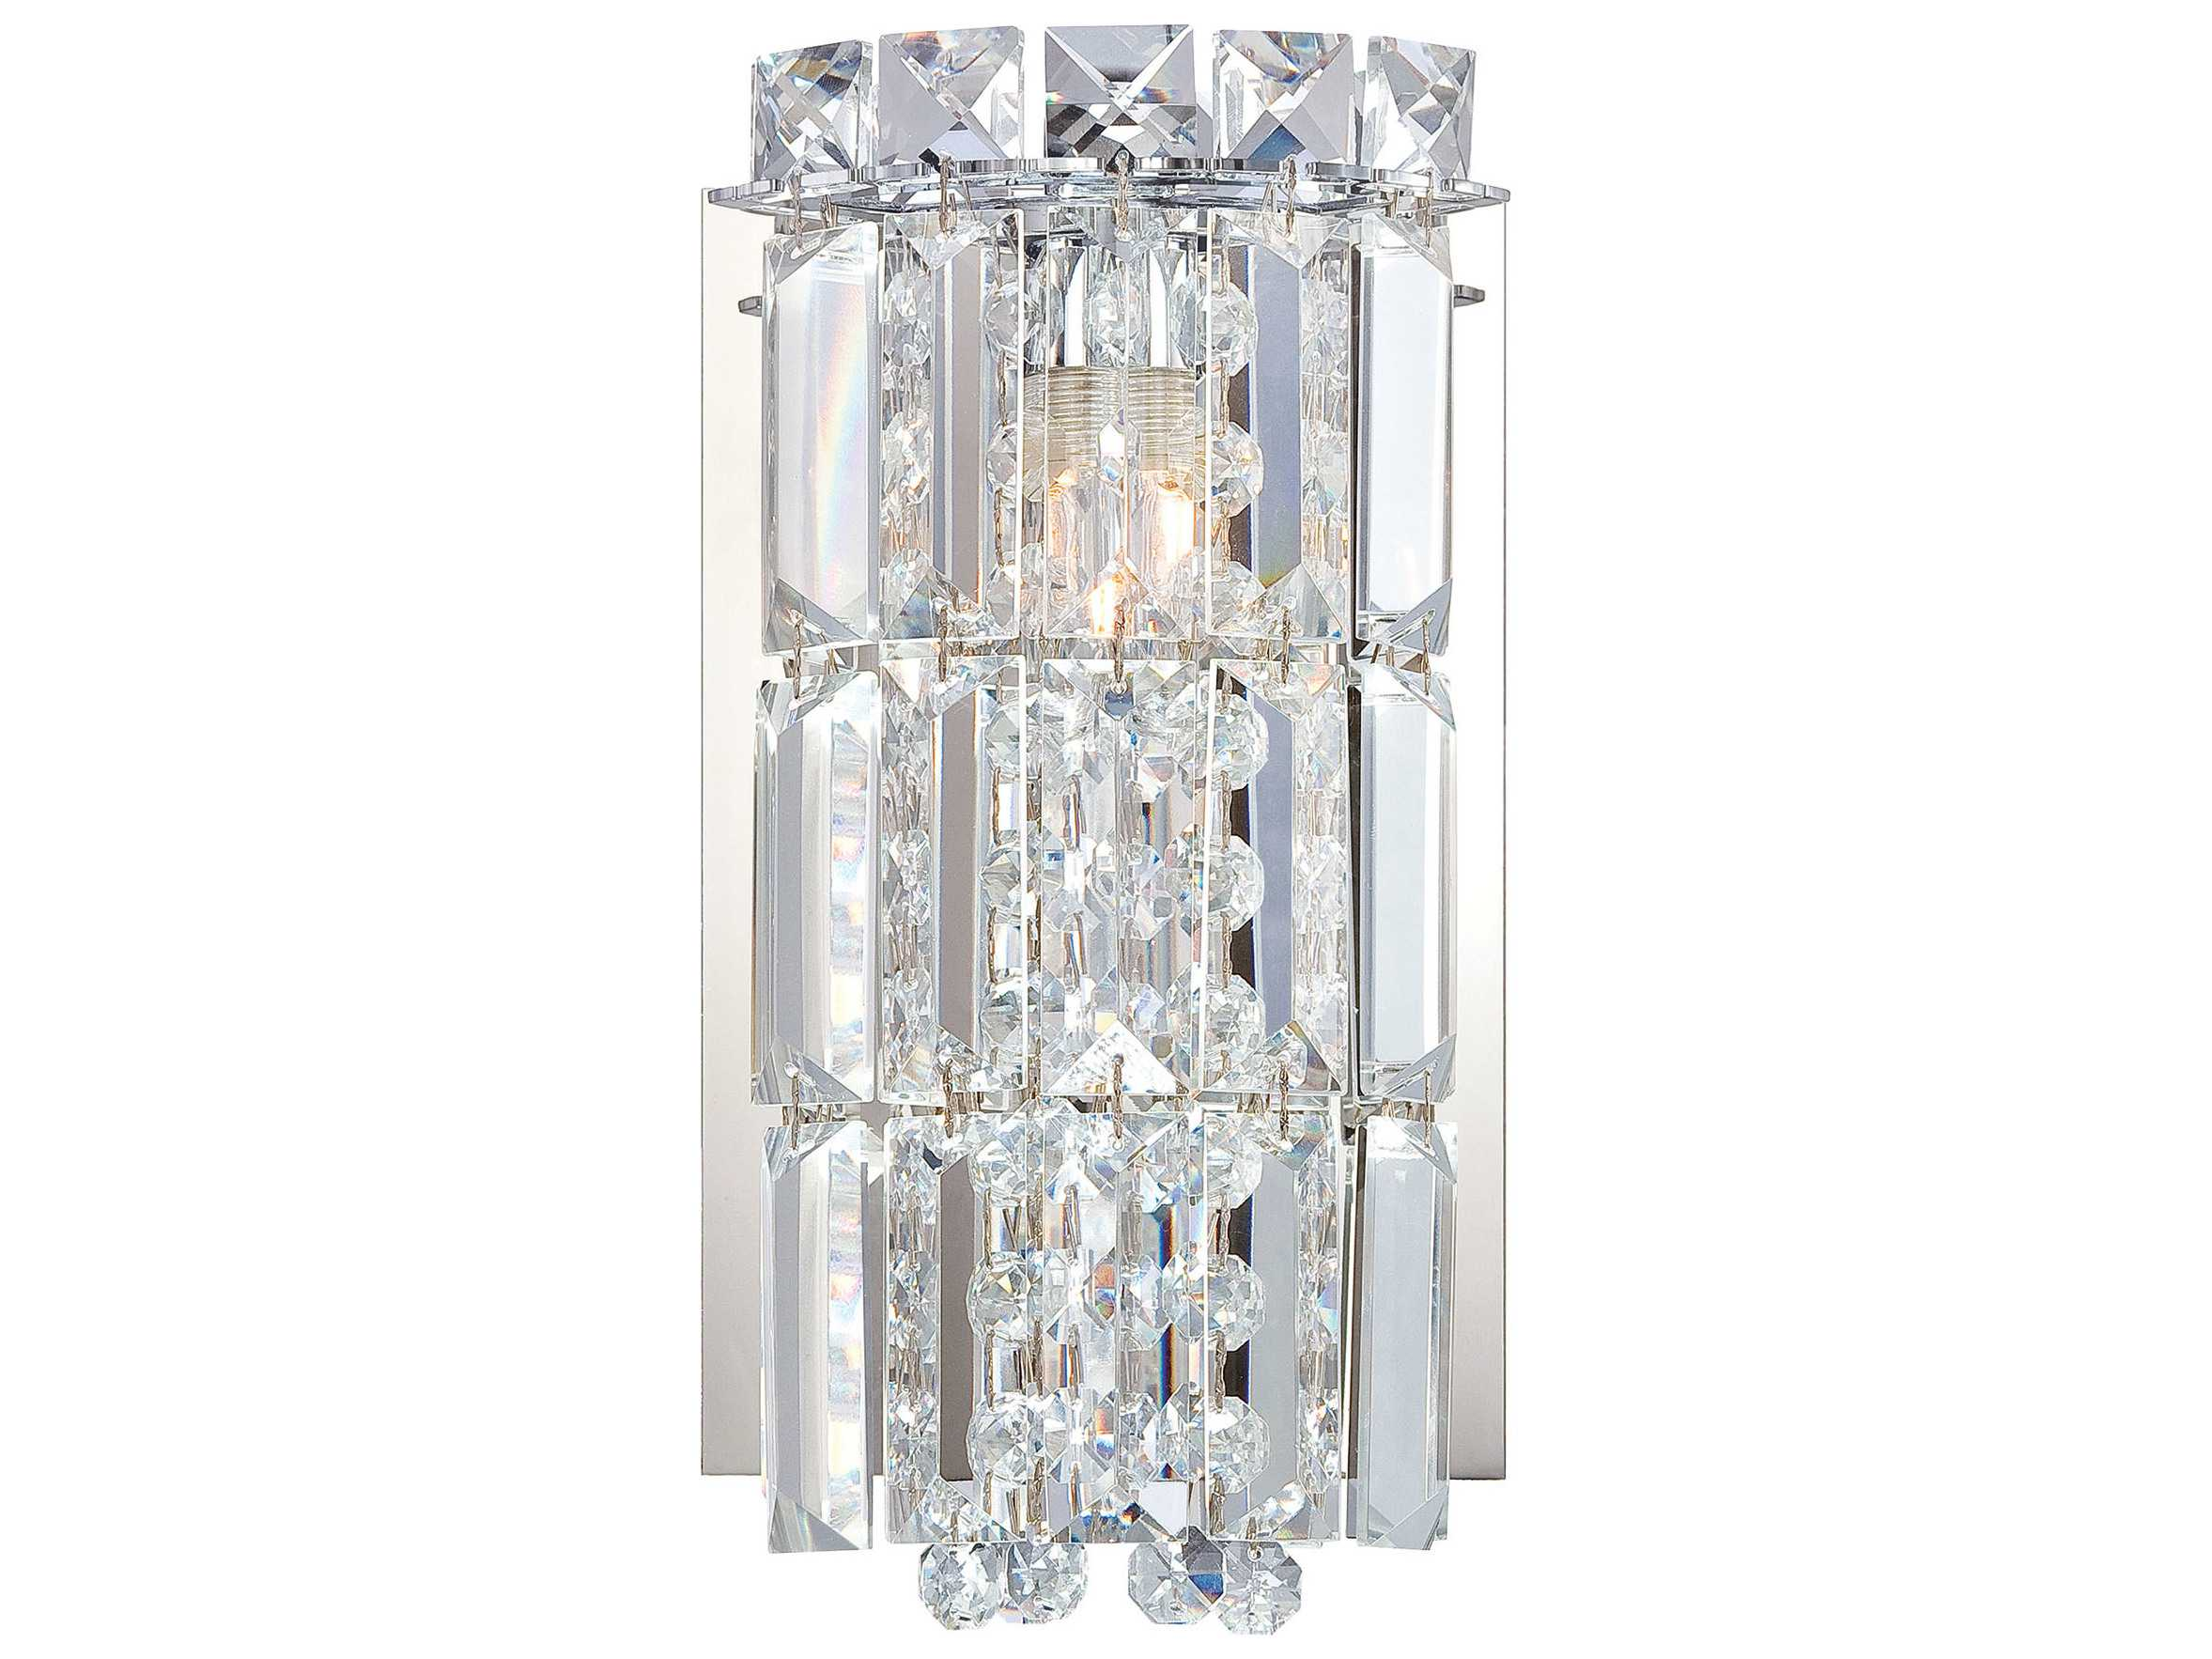 Vanity Lights With Clear Glass : Alico Princess Crown Chrome & Clear Crystal Glass Vanity Light ALCBV1351015